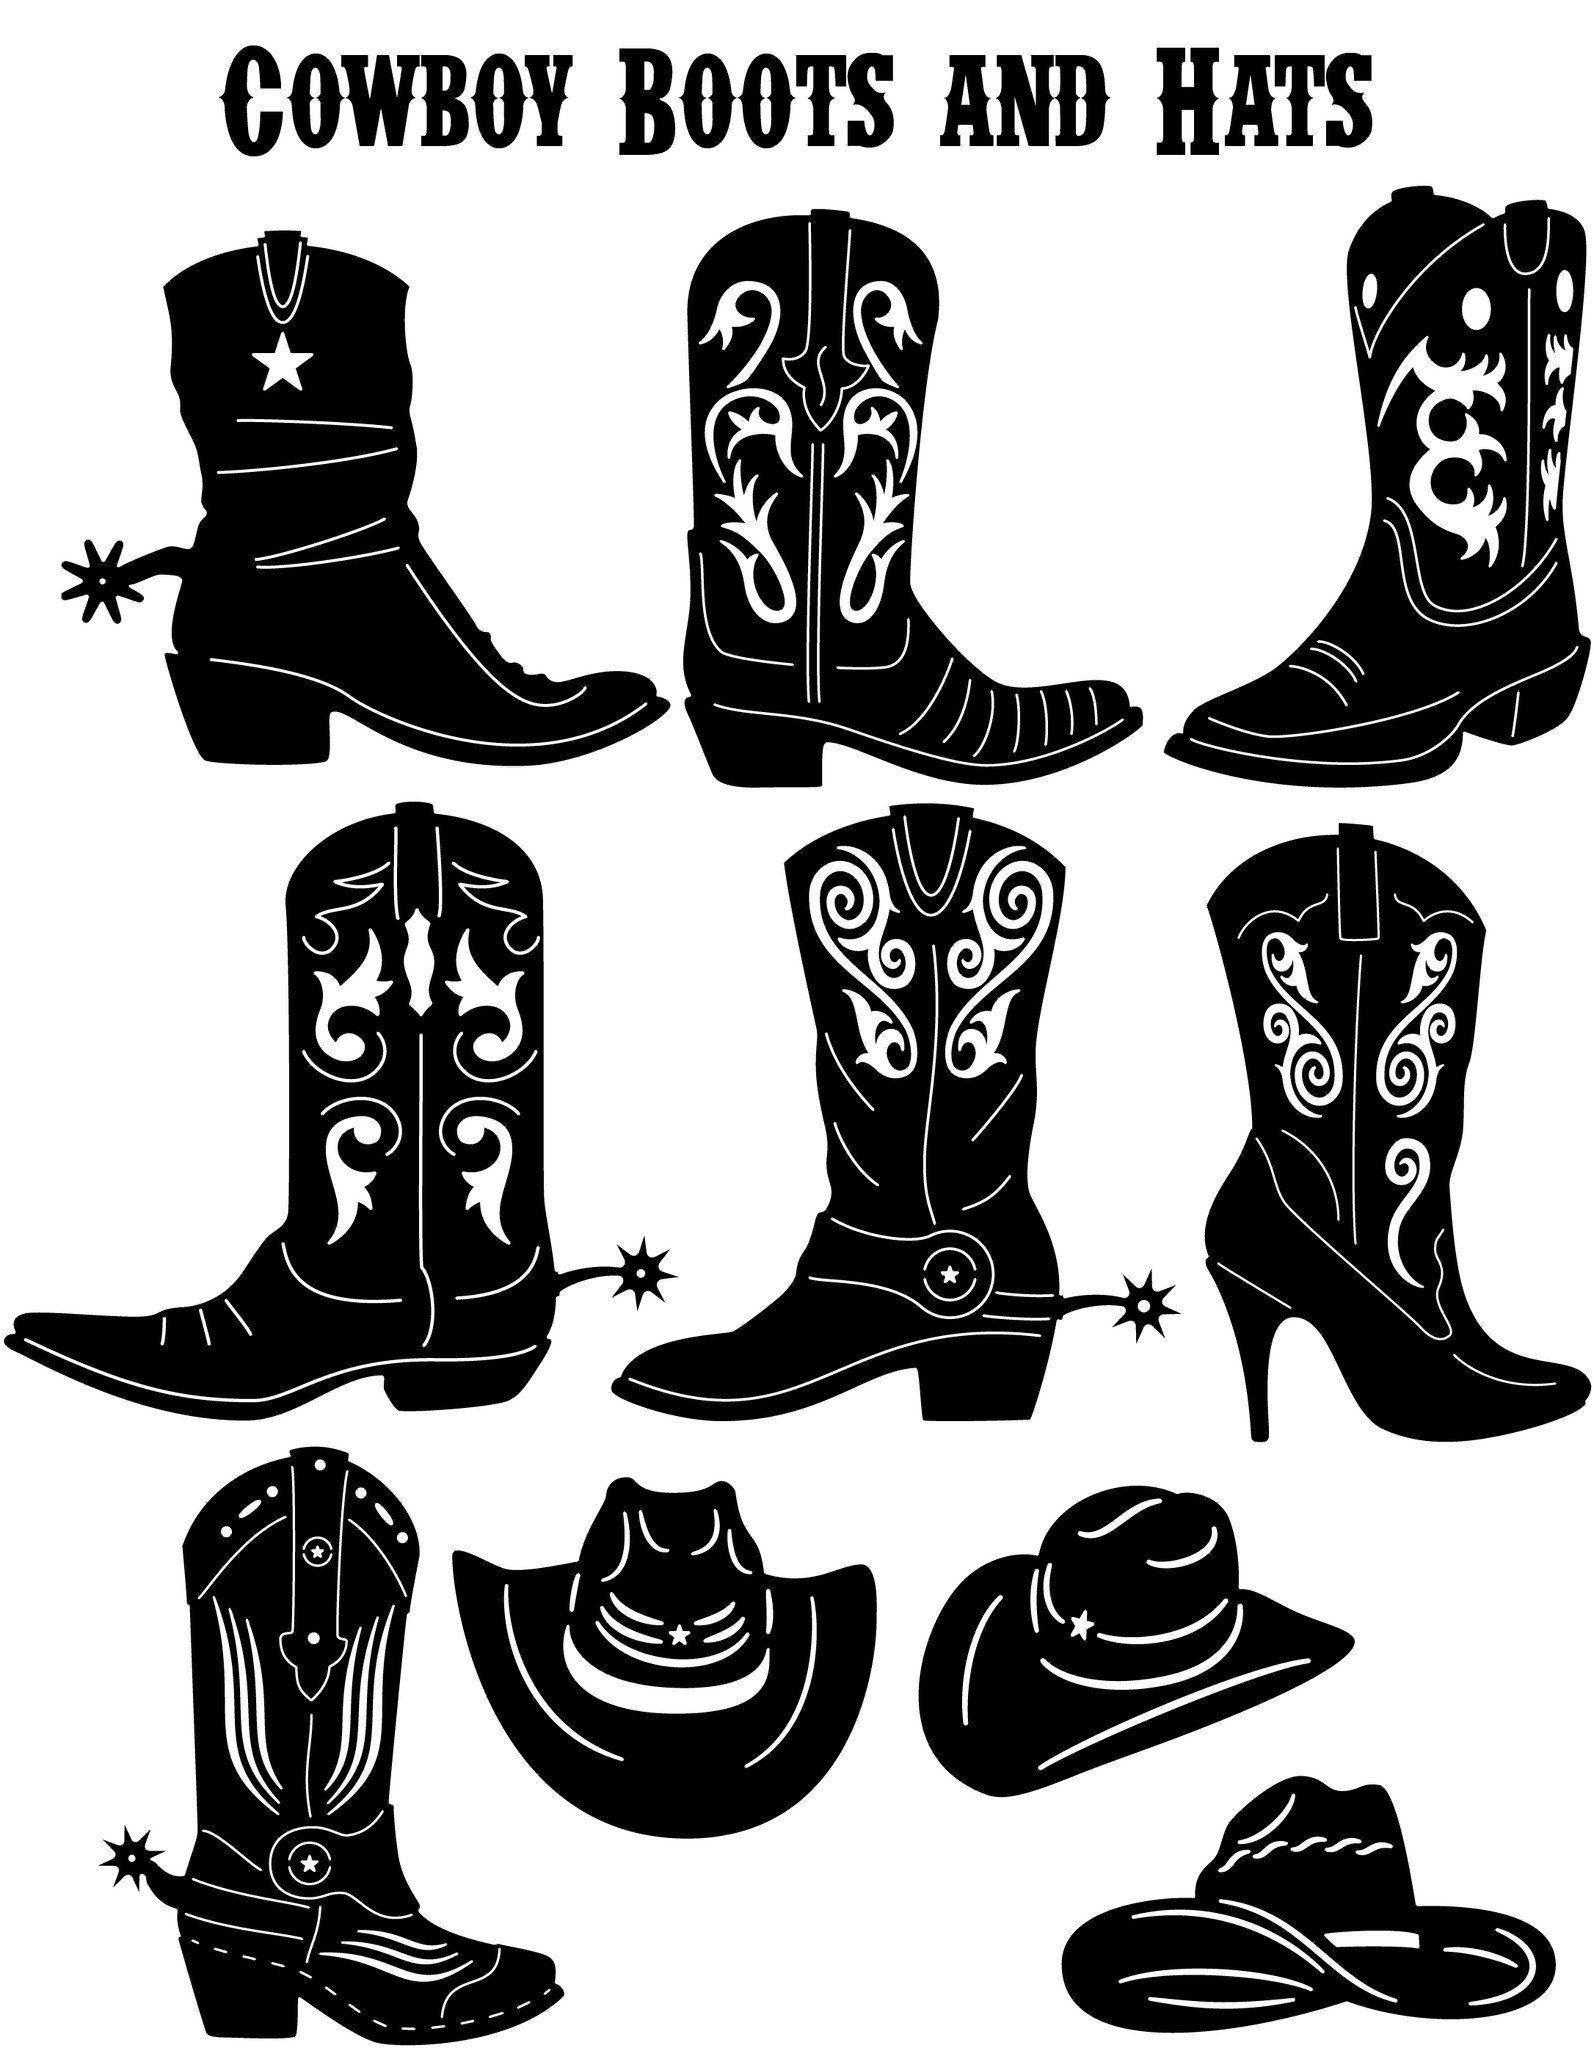 western cowboy boots and hats dxfforcnc dxf files cut ready Apostle Hats western cowboy boots and hats cnc laser plasma ready files cam cut machines cad dxf 24 90